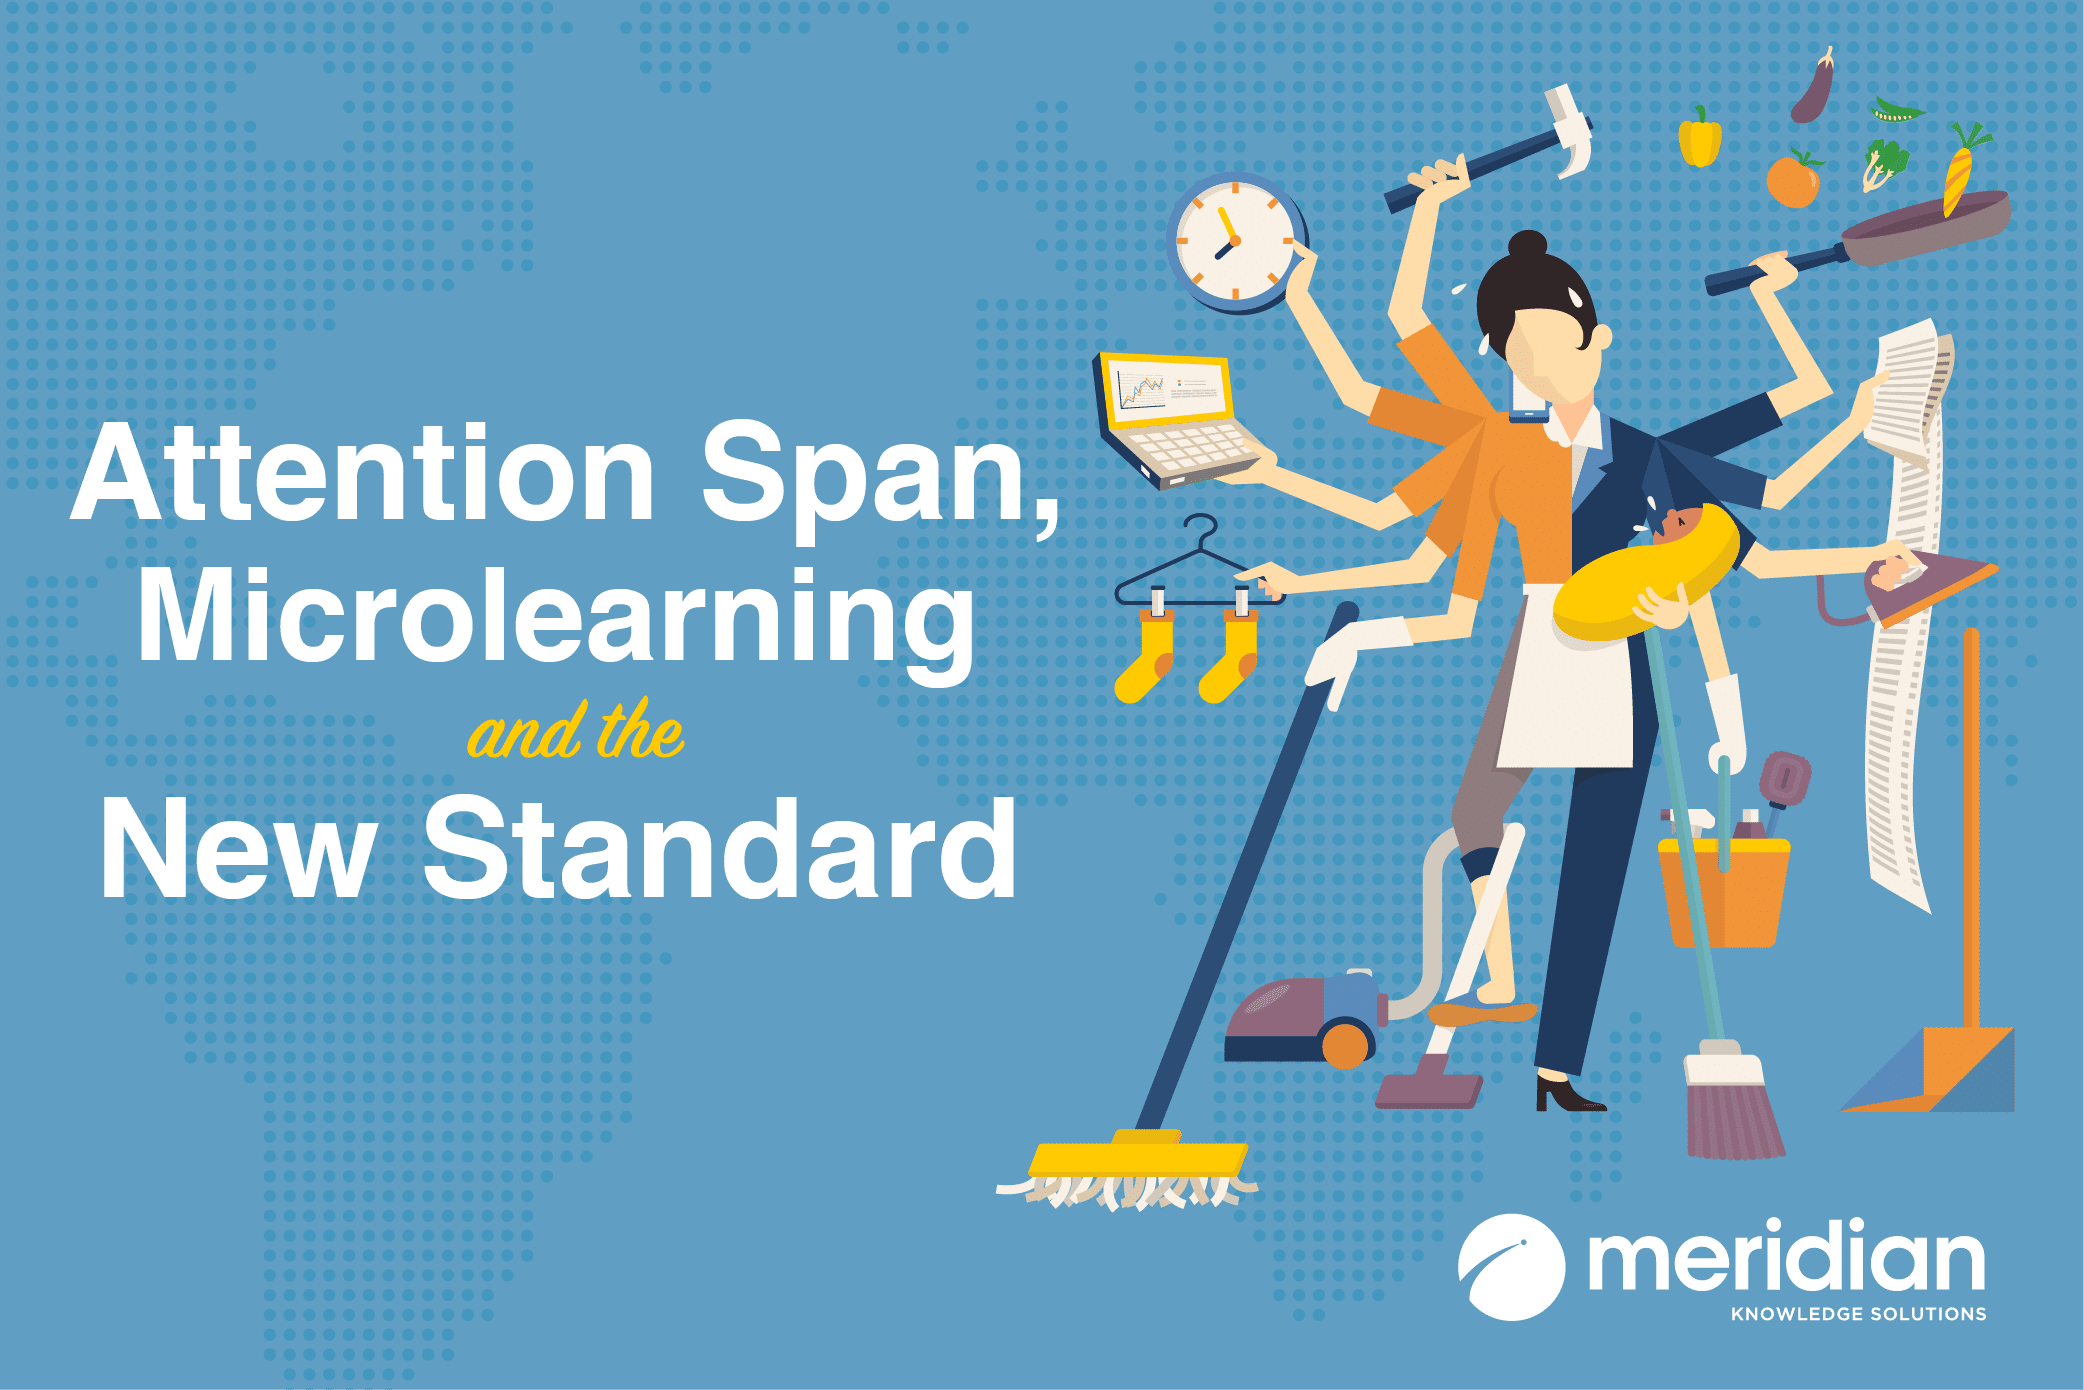 ATTENTION SPAN, MICROLEARNING AND THE NEW STANDARD